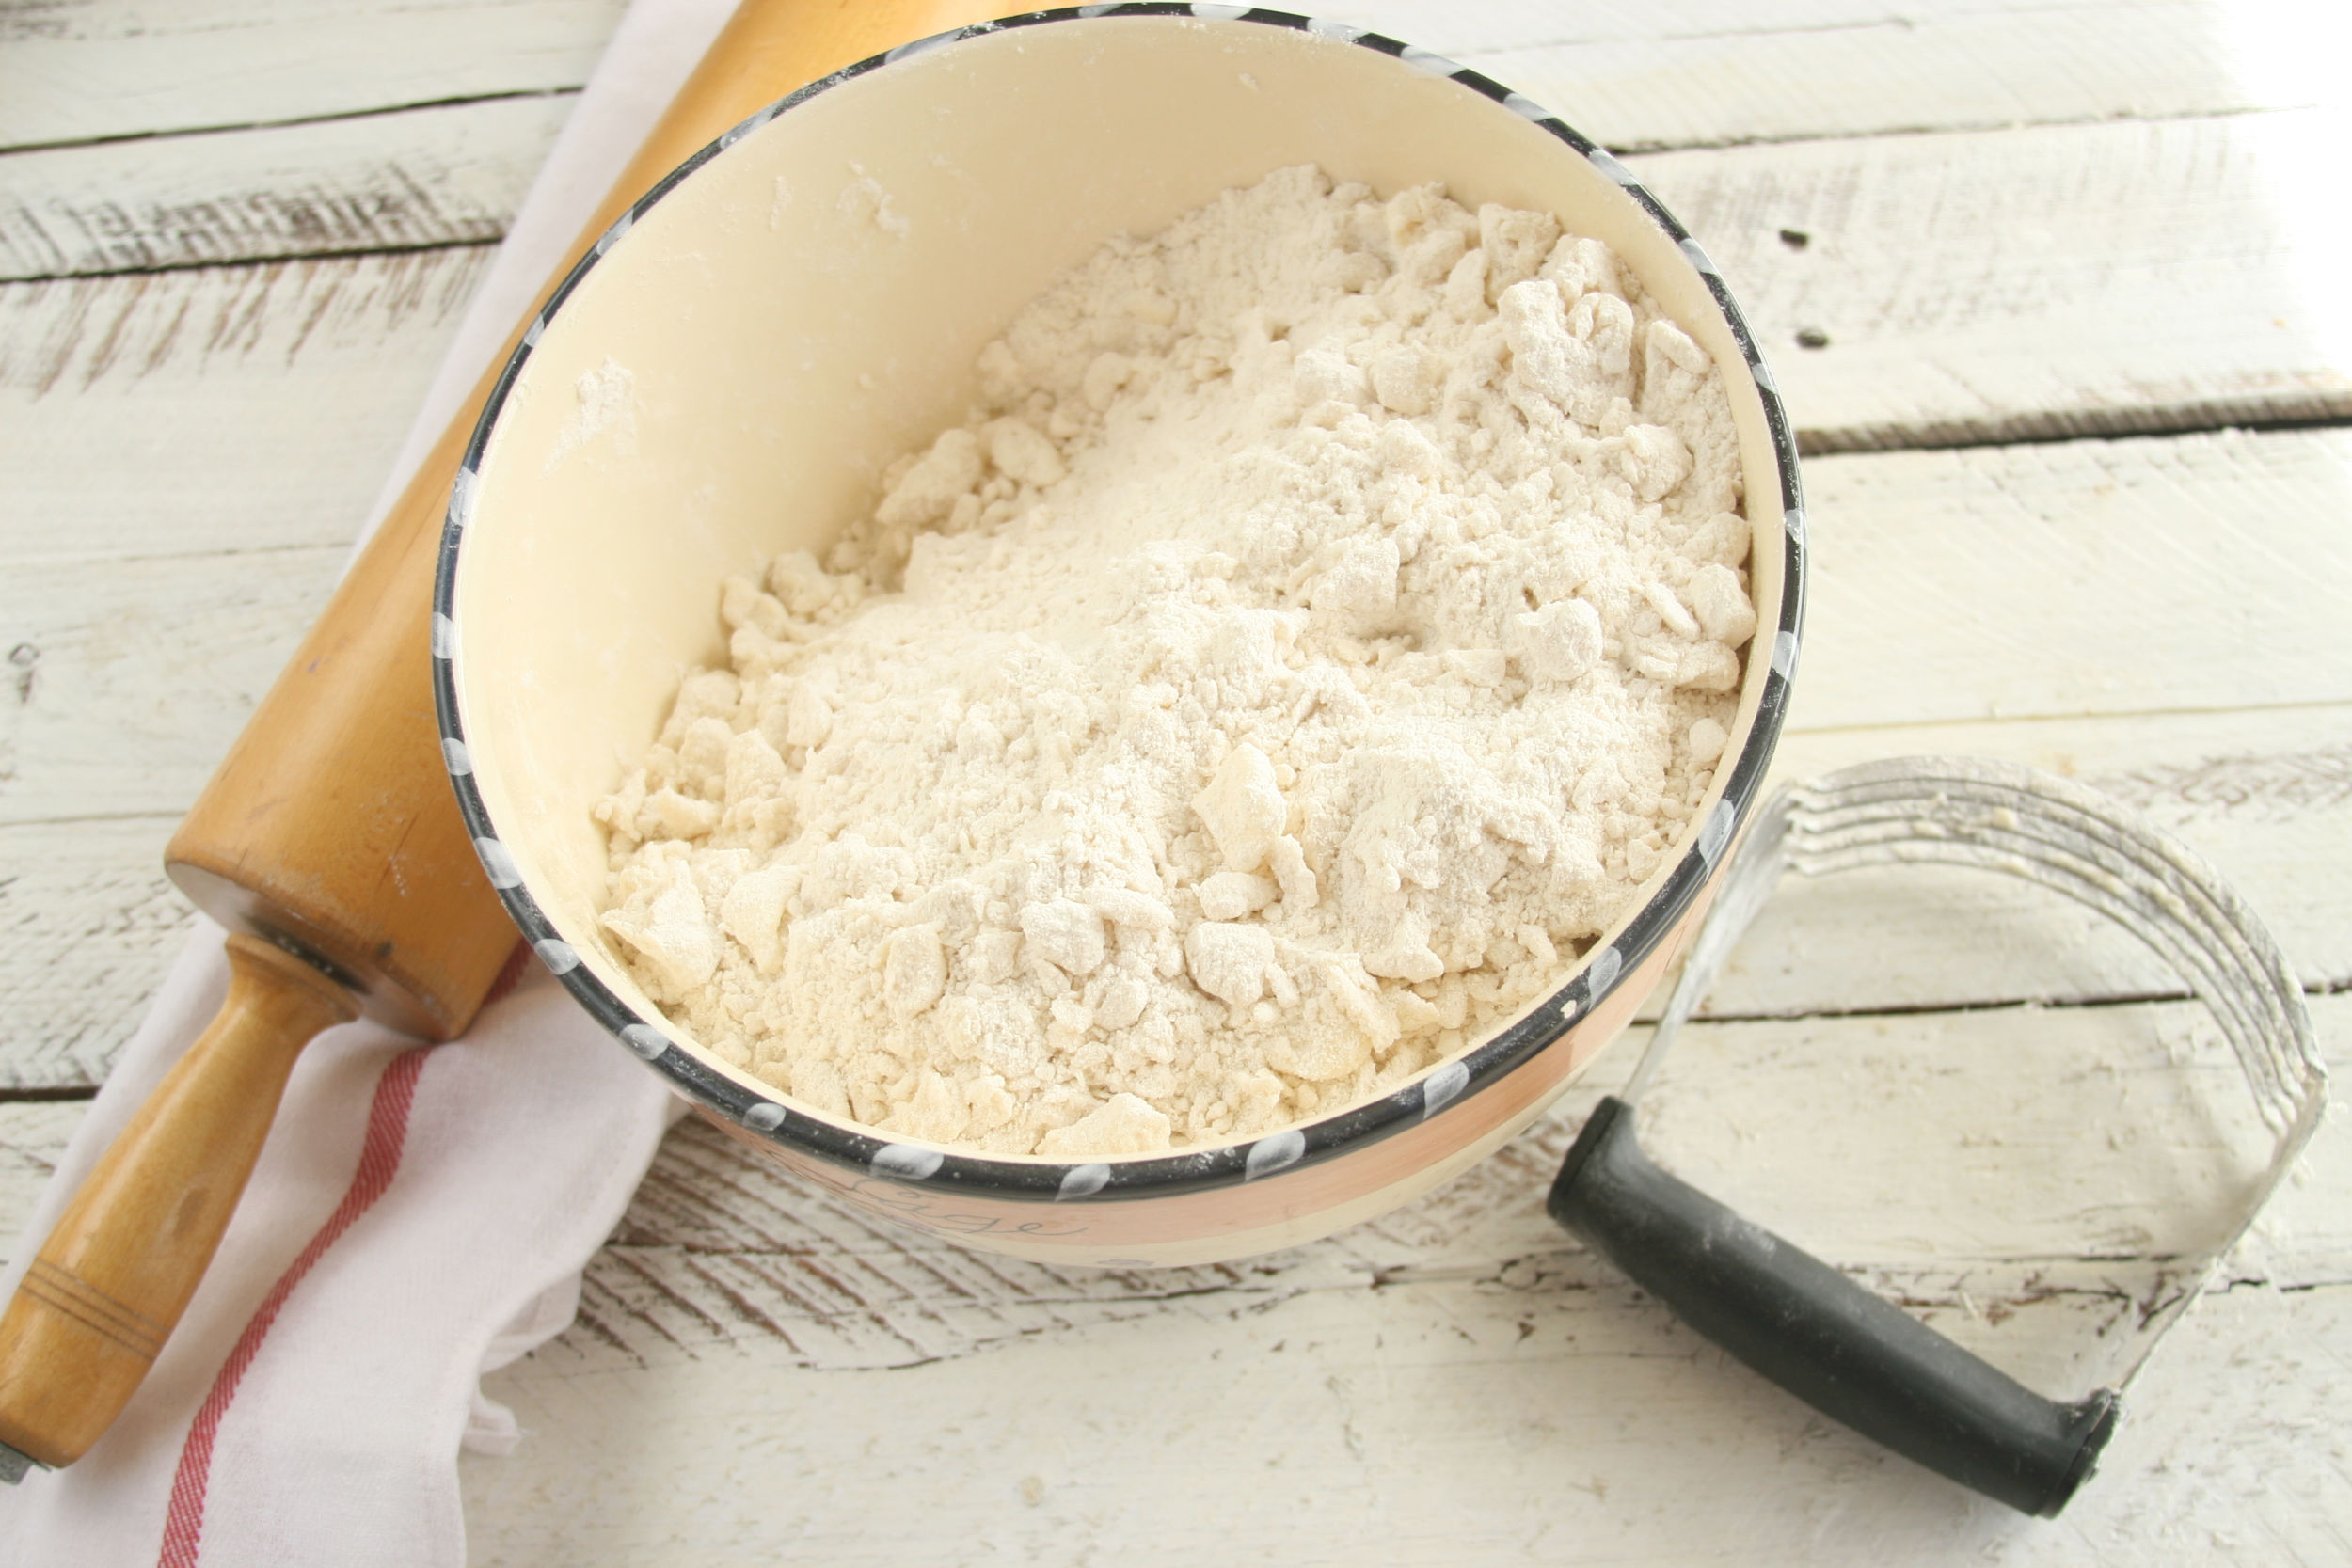 large mixing bowl with flour and pea size pieces of butter and lard making pie crust.